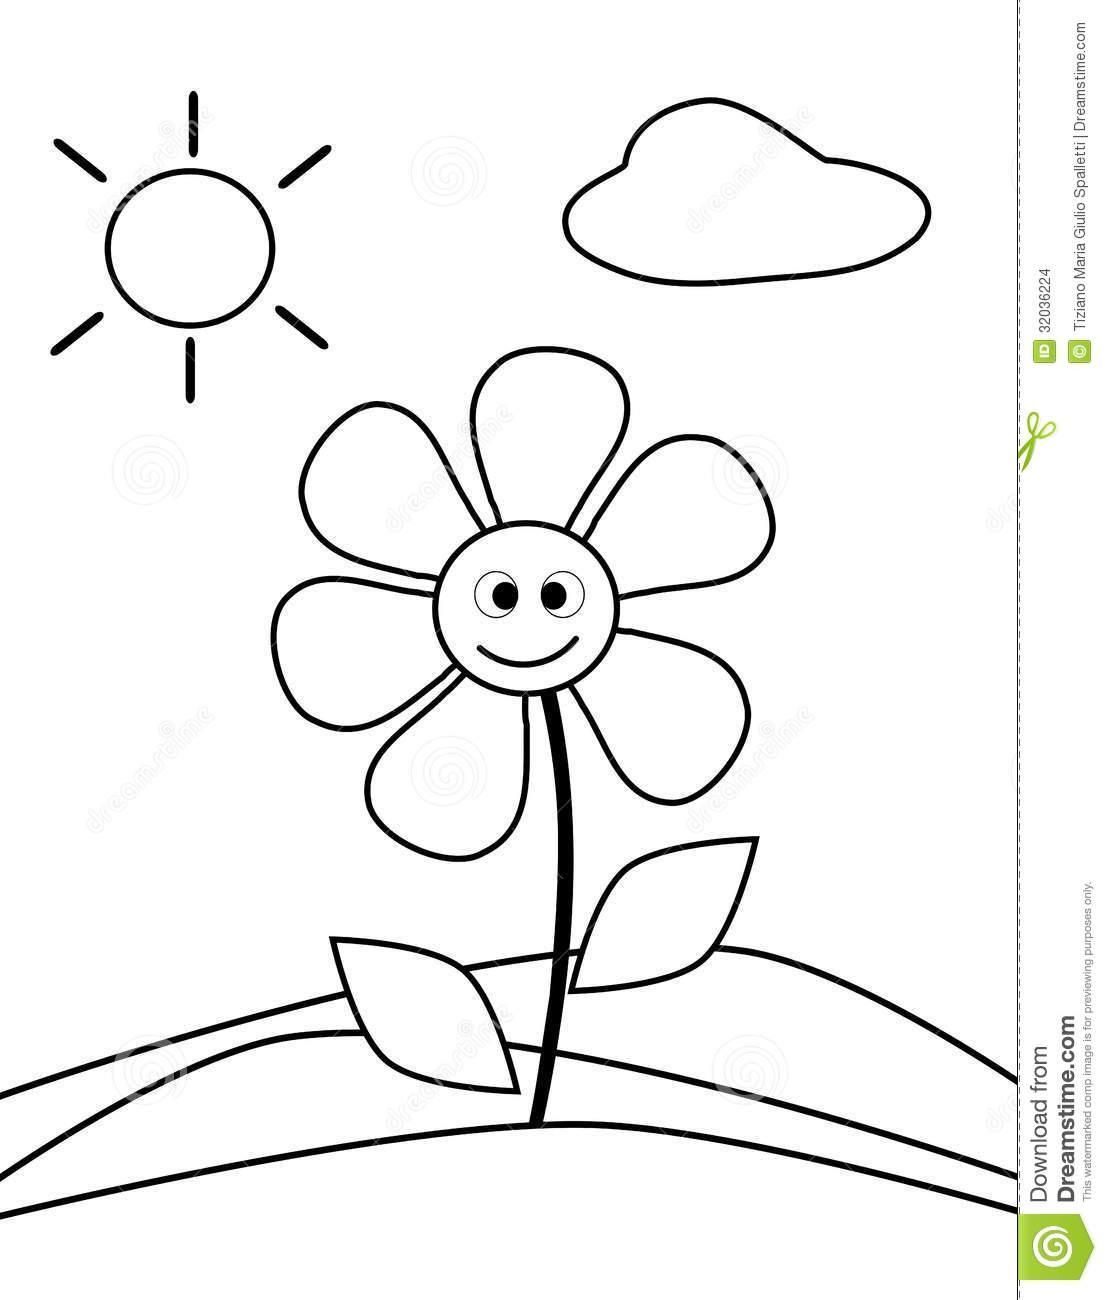 Simple Coloring Pages For 2 Year Olds At Getcolorings